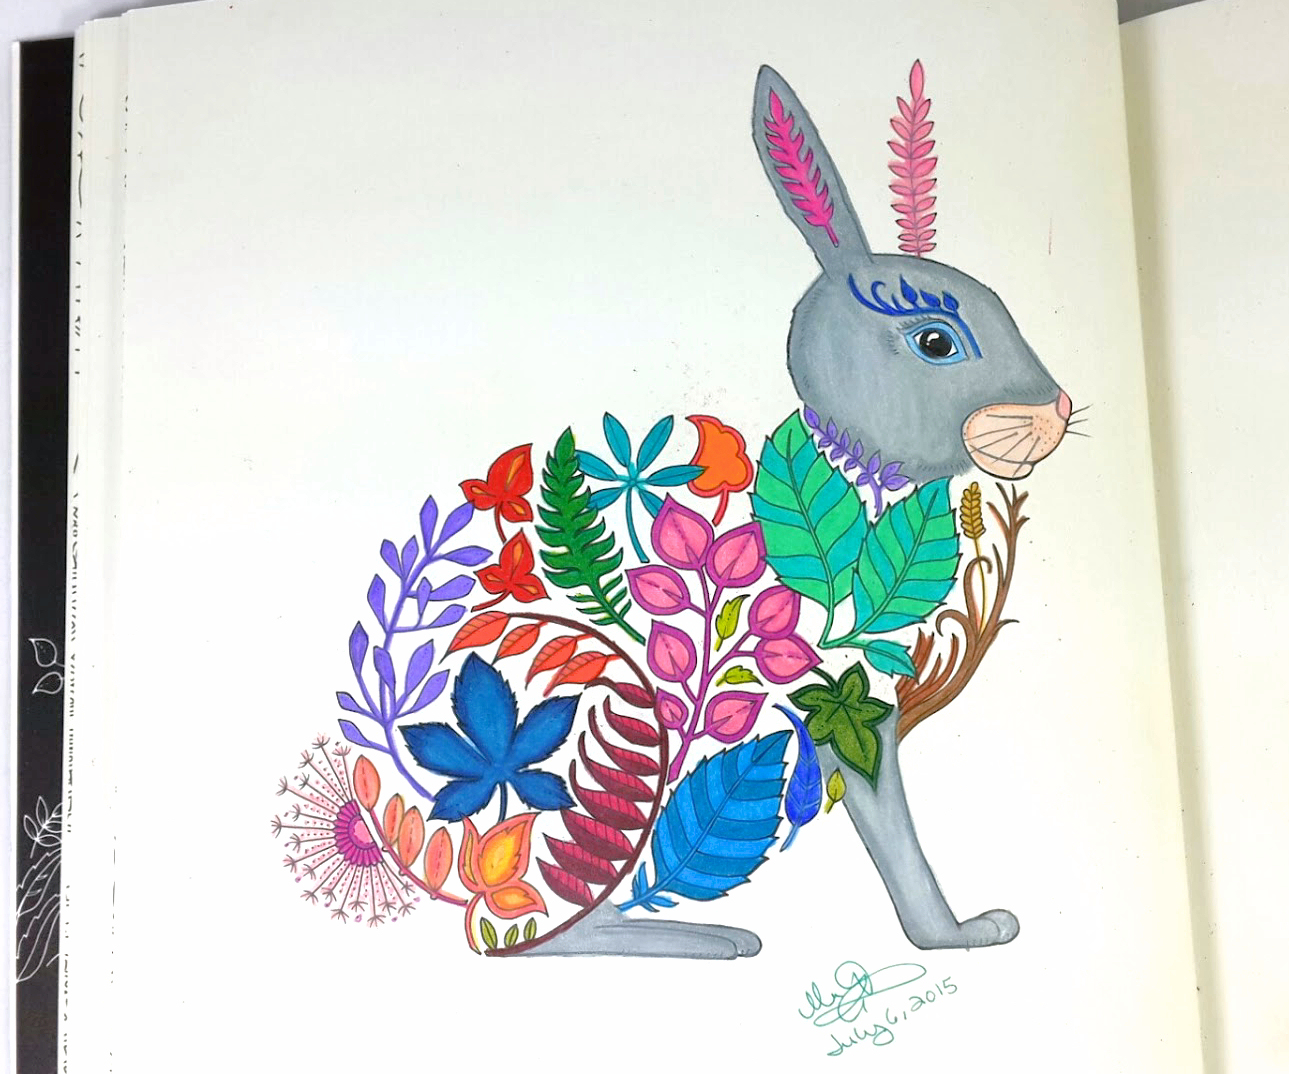 Completely Coloring Page Of Floral Bunny Rabbit From The Enchanted Forest Book